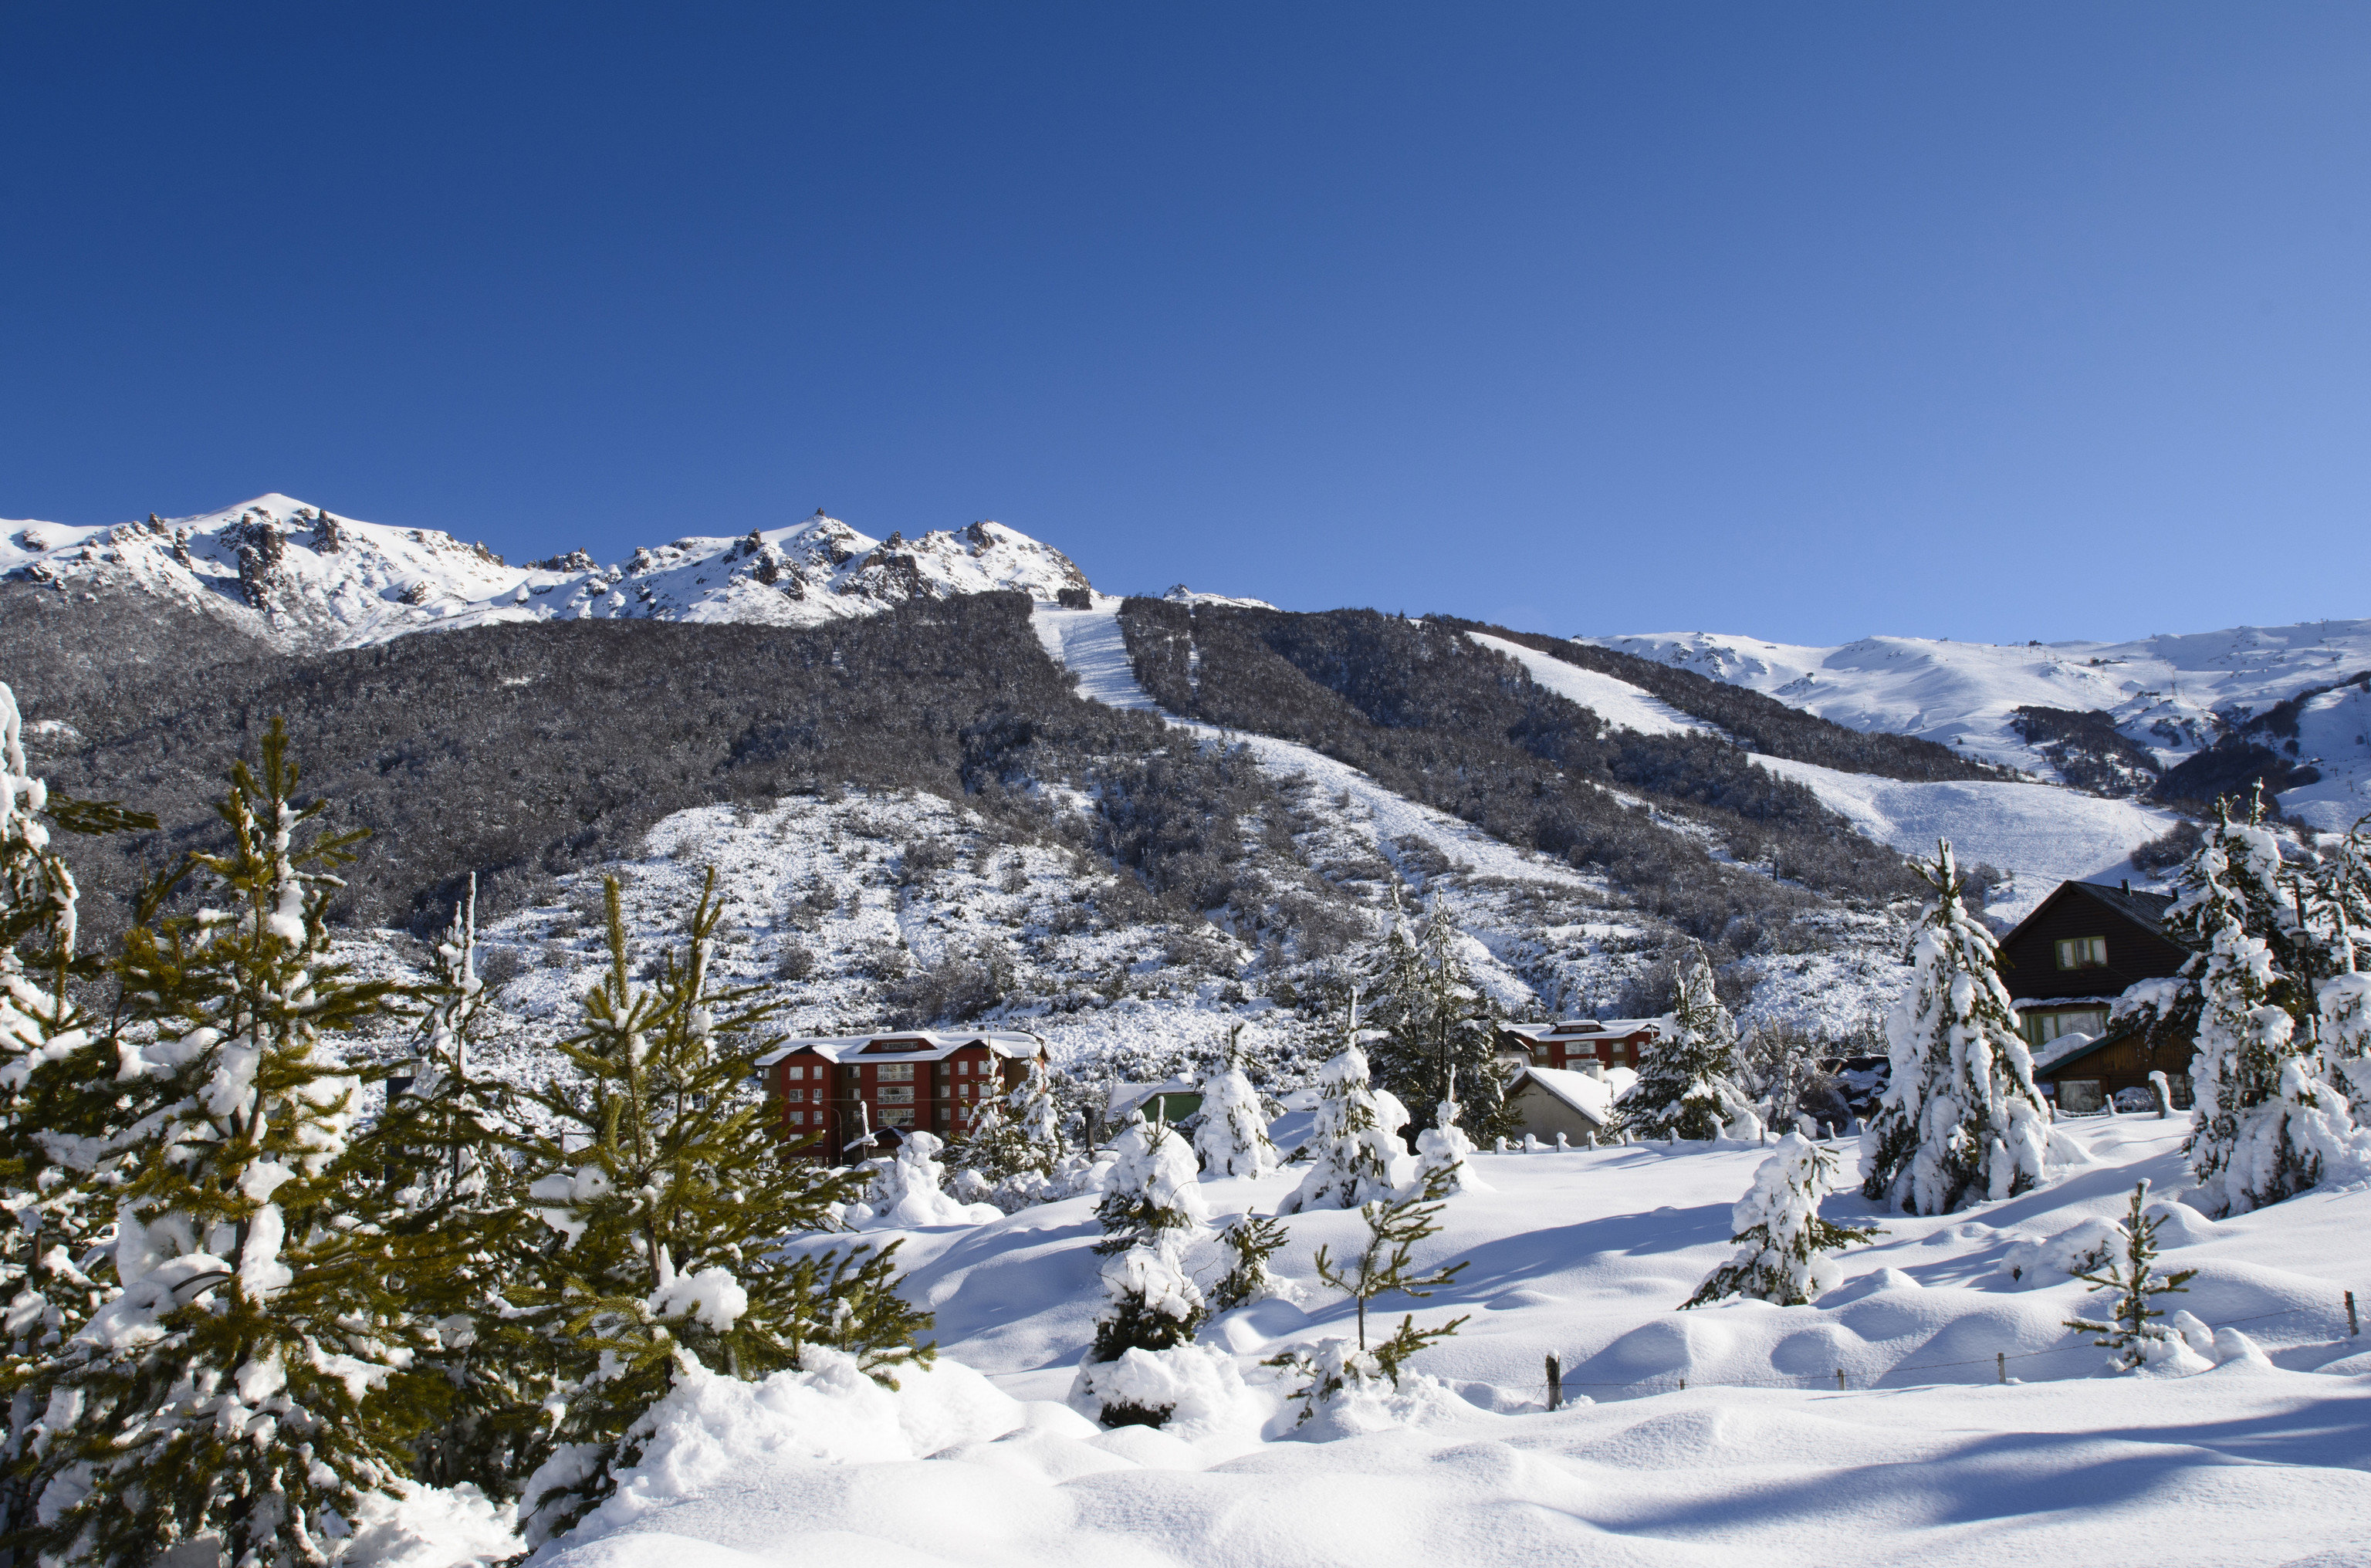 Outdoors + Adventure snow outdoor sky skiing Winter mountain mountainous landforms mountain range Nature wilderness tree ridge freezing massif alps geological phenomenon mount scenery slope cloud landscape hill summit mountain pass glacial landform fell pine family fir conifer elevation ice valley cirque national park